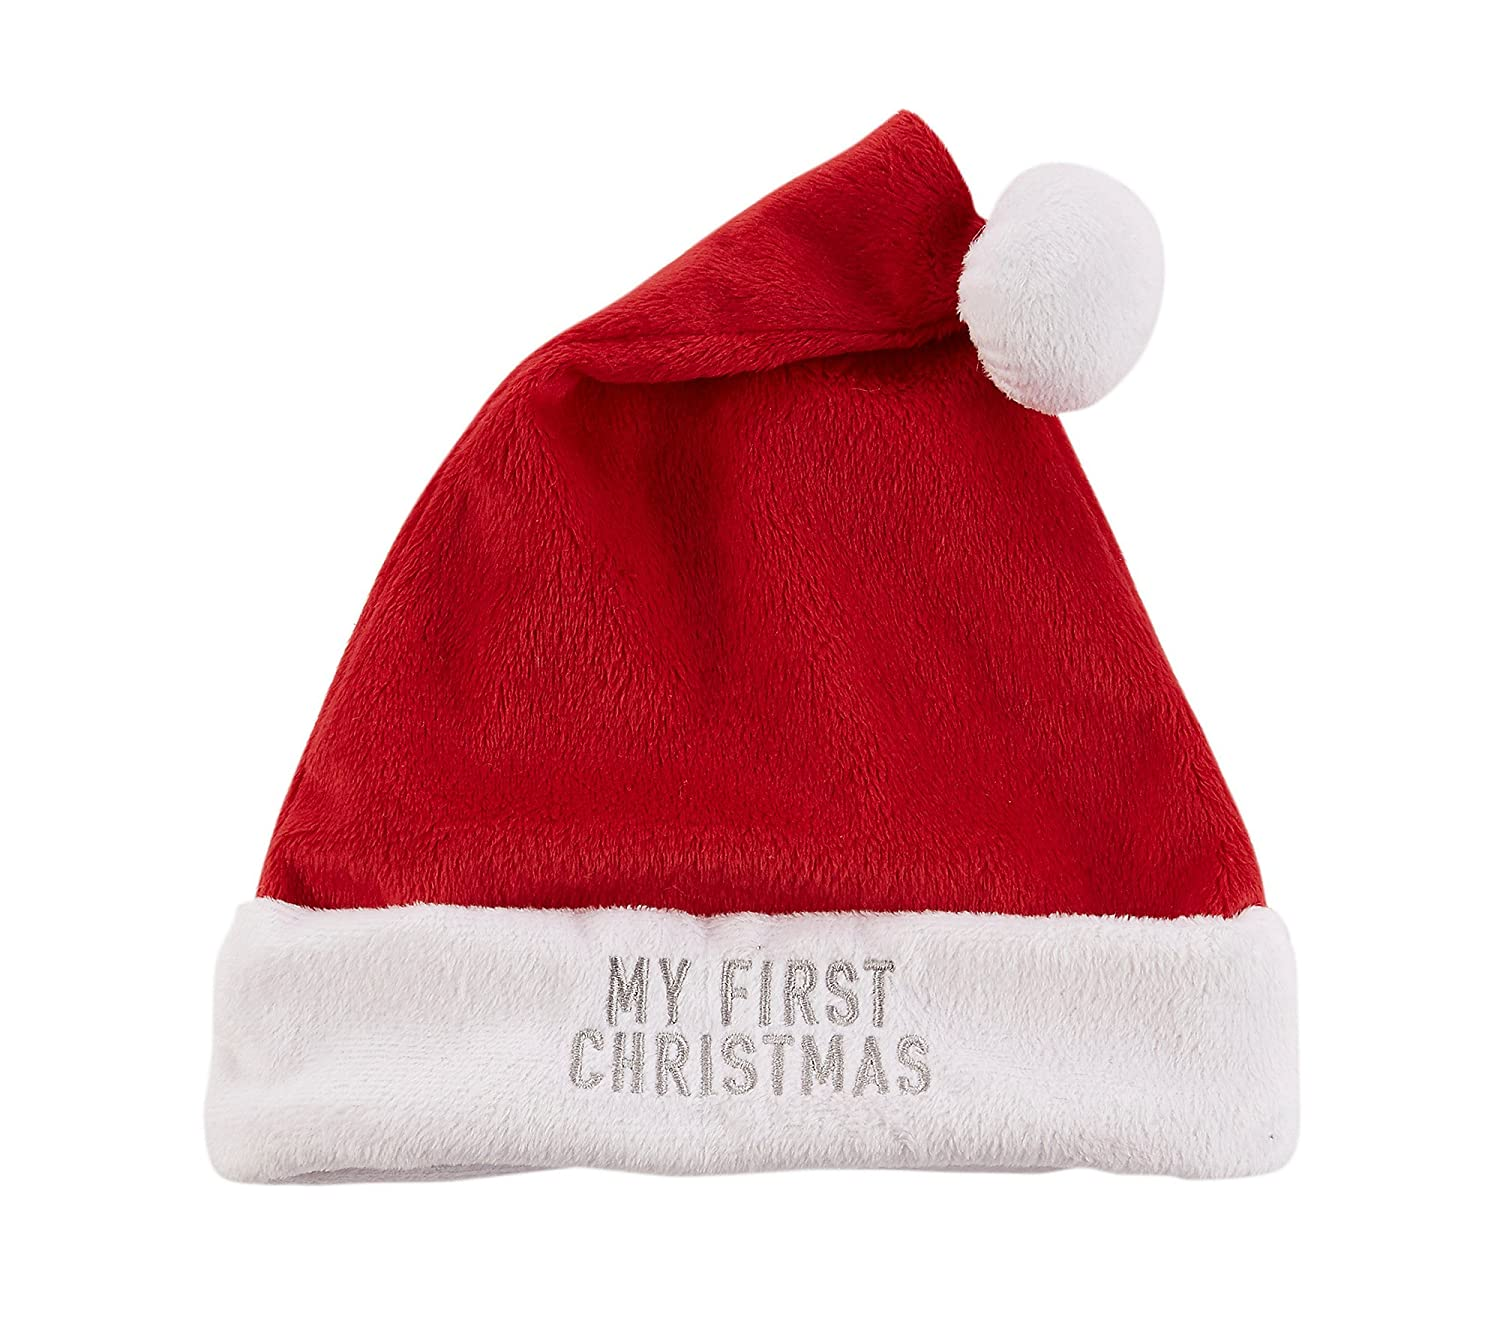 Carter's Baby My First Christmas Santa Hat Carters